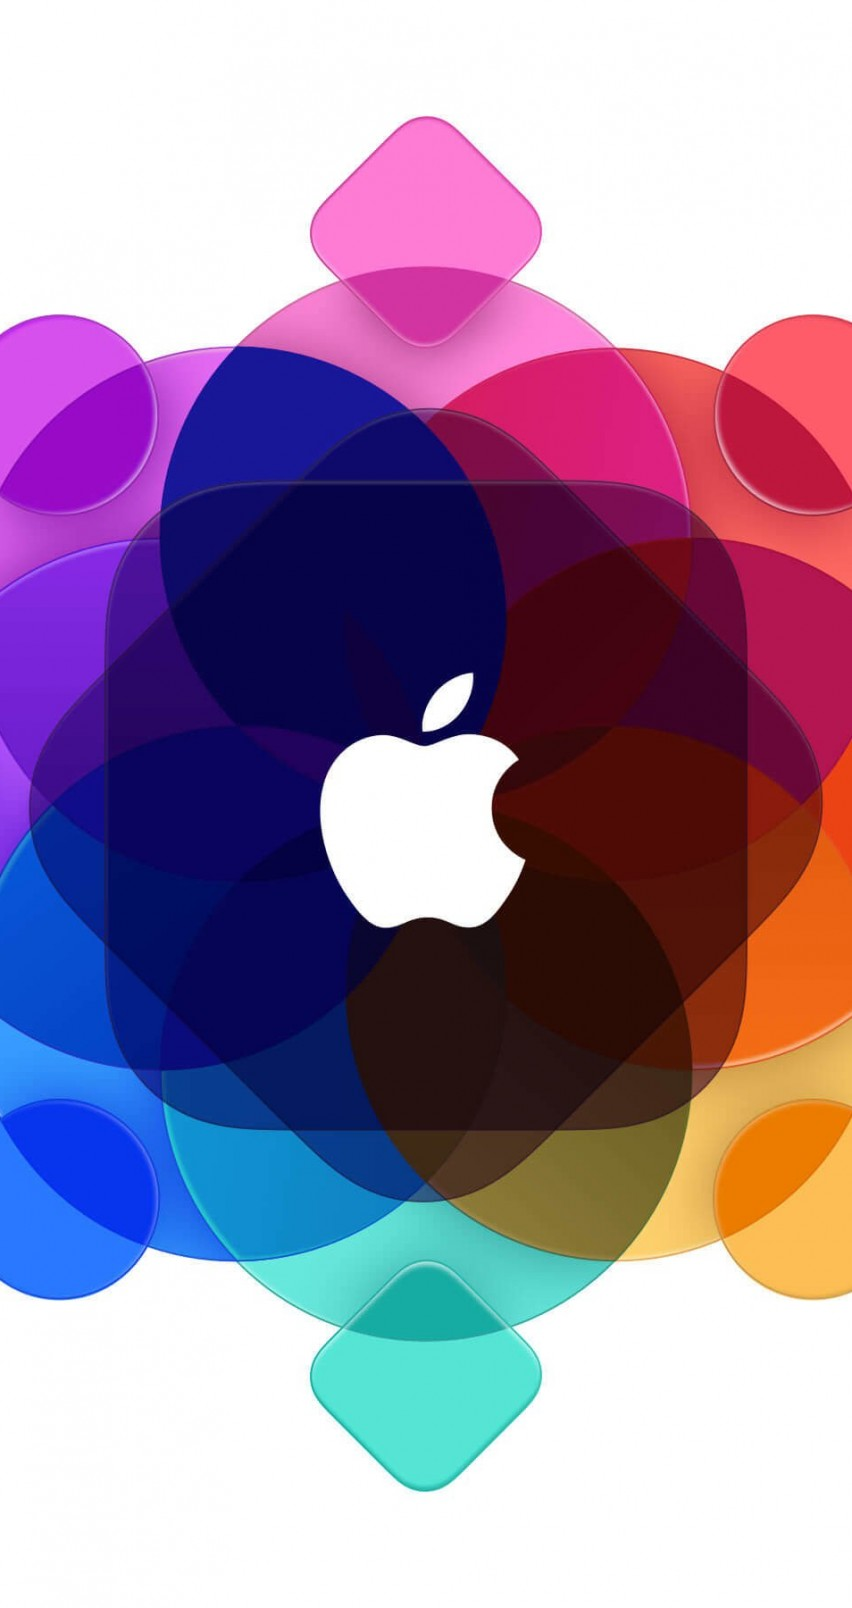 Download apple wwdc 2015 hd wallpaper for iphone 6 6s